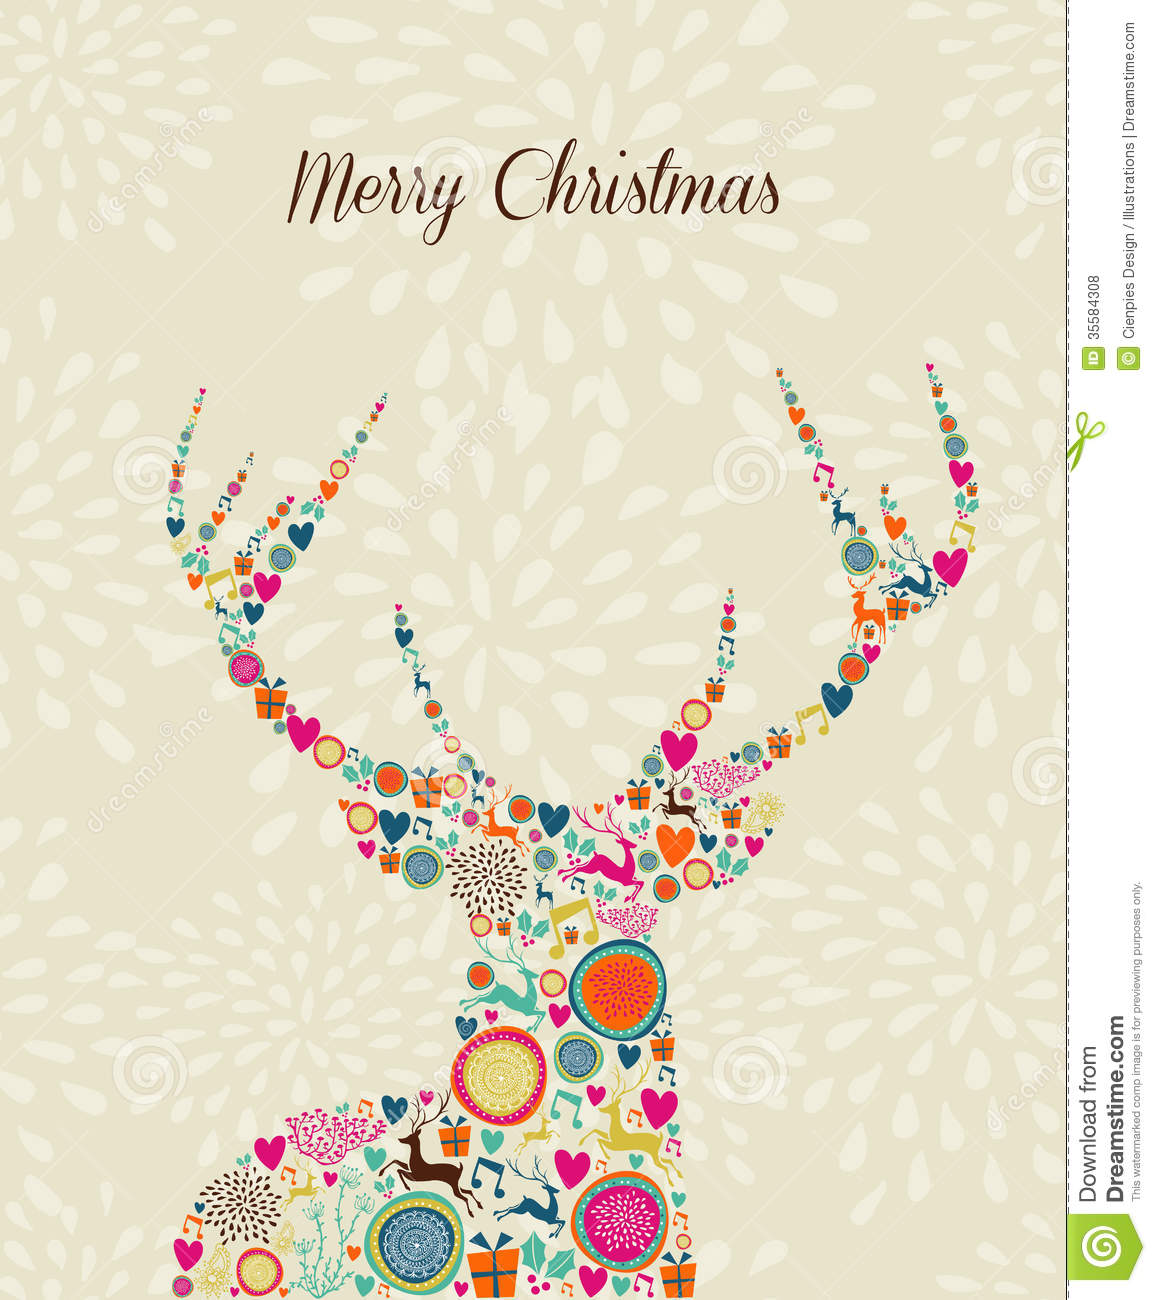 merry vintage christmas elements reindeer greeting stock clip art of deer season clip art of deer faces